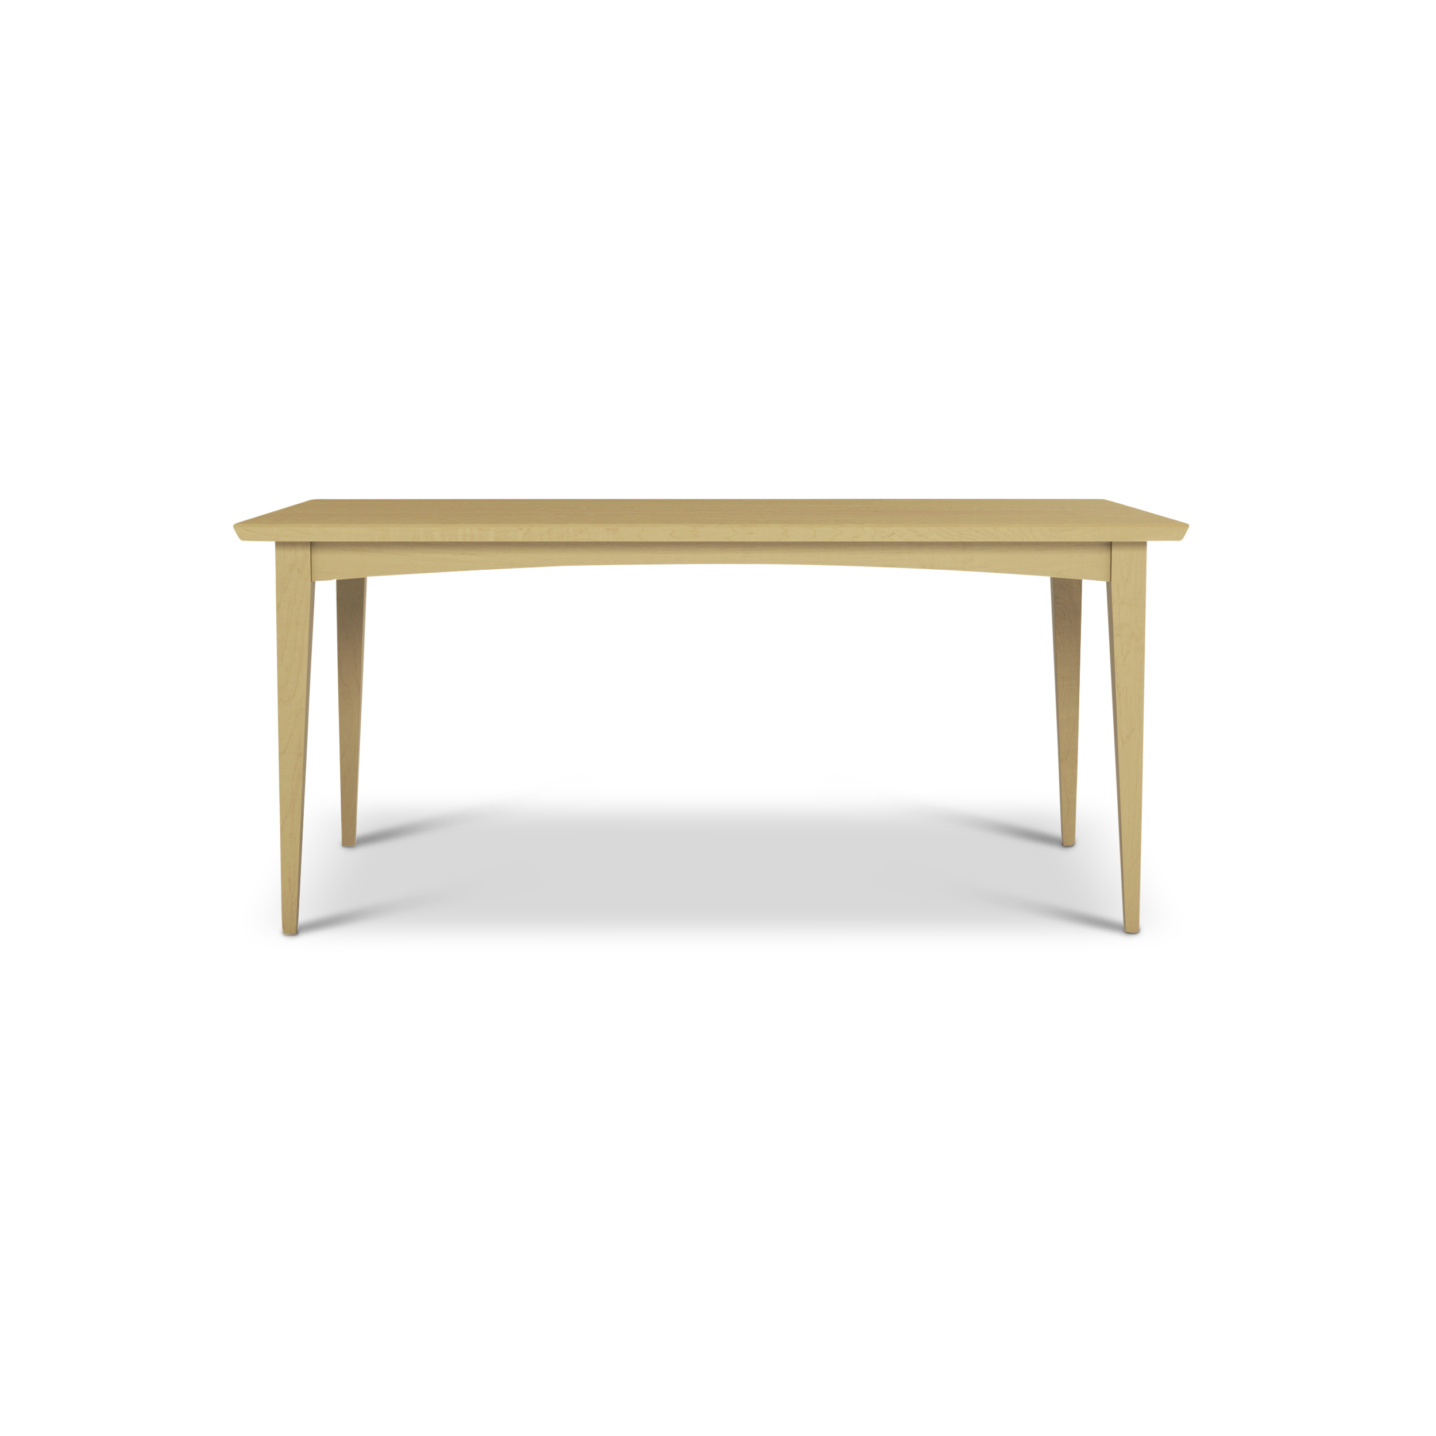 Solid Maple mid-century modern dining table